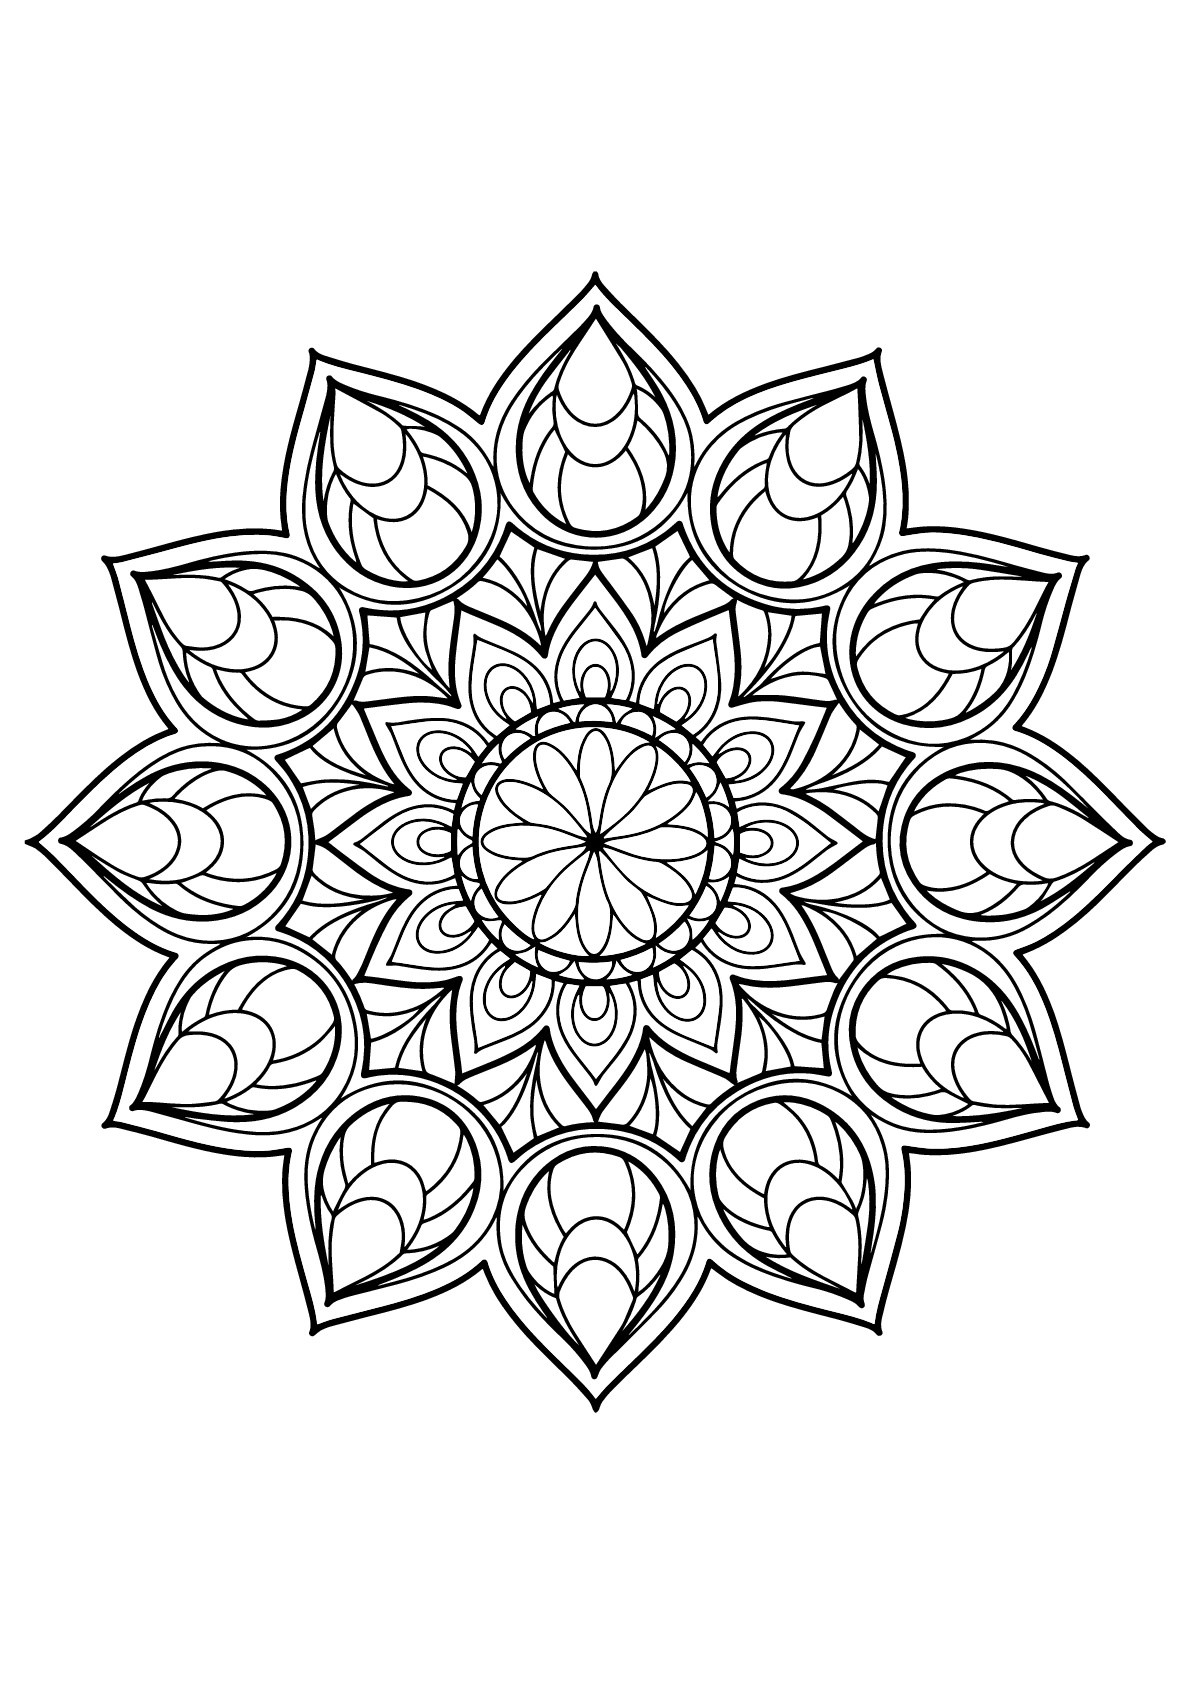 Mandala from free coloring books for adults 9 - M&alas ... | free printable mandala coloring pages for adults